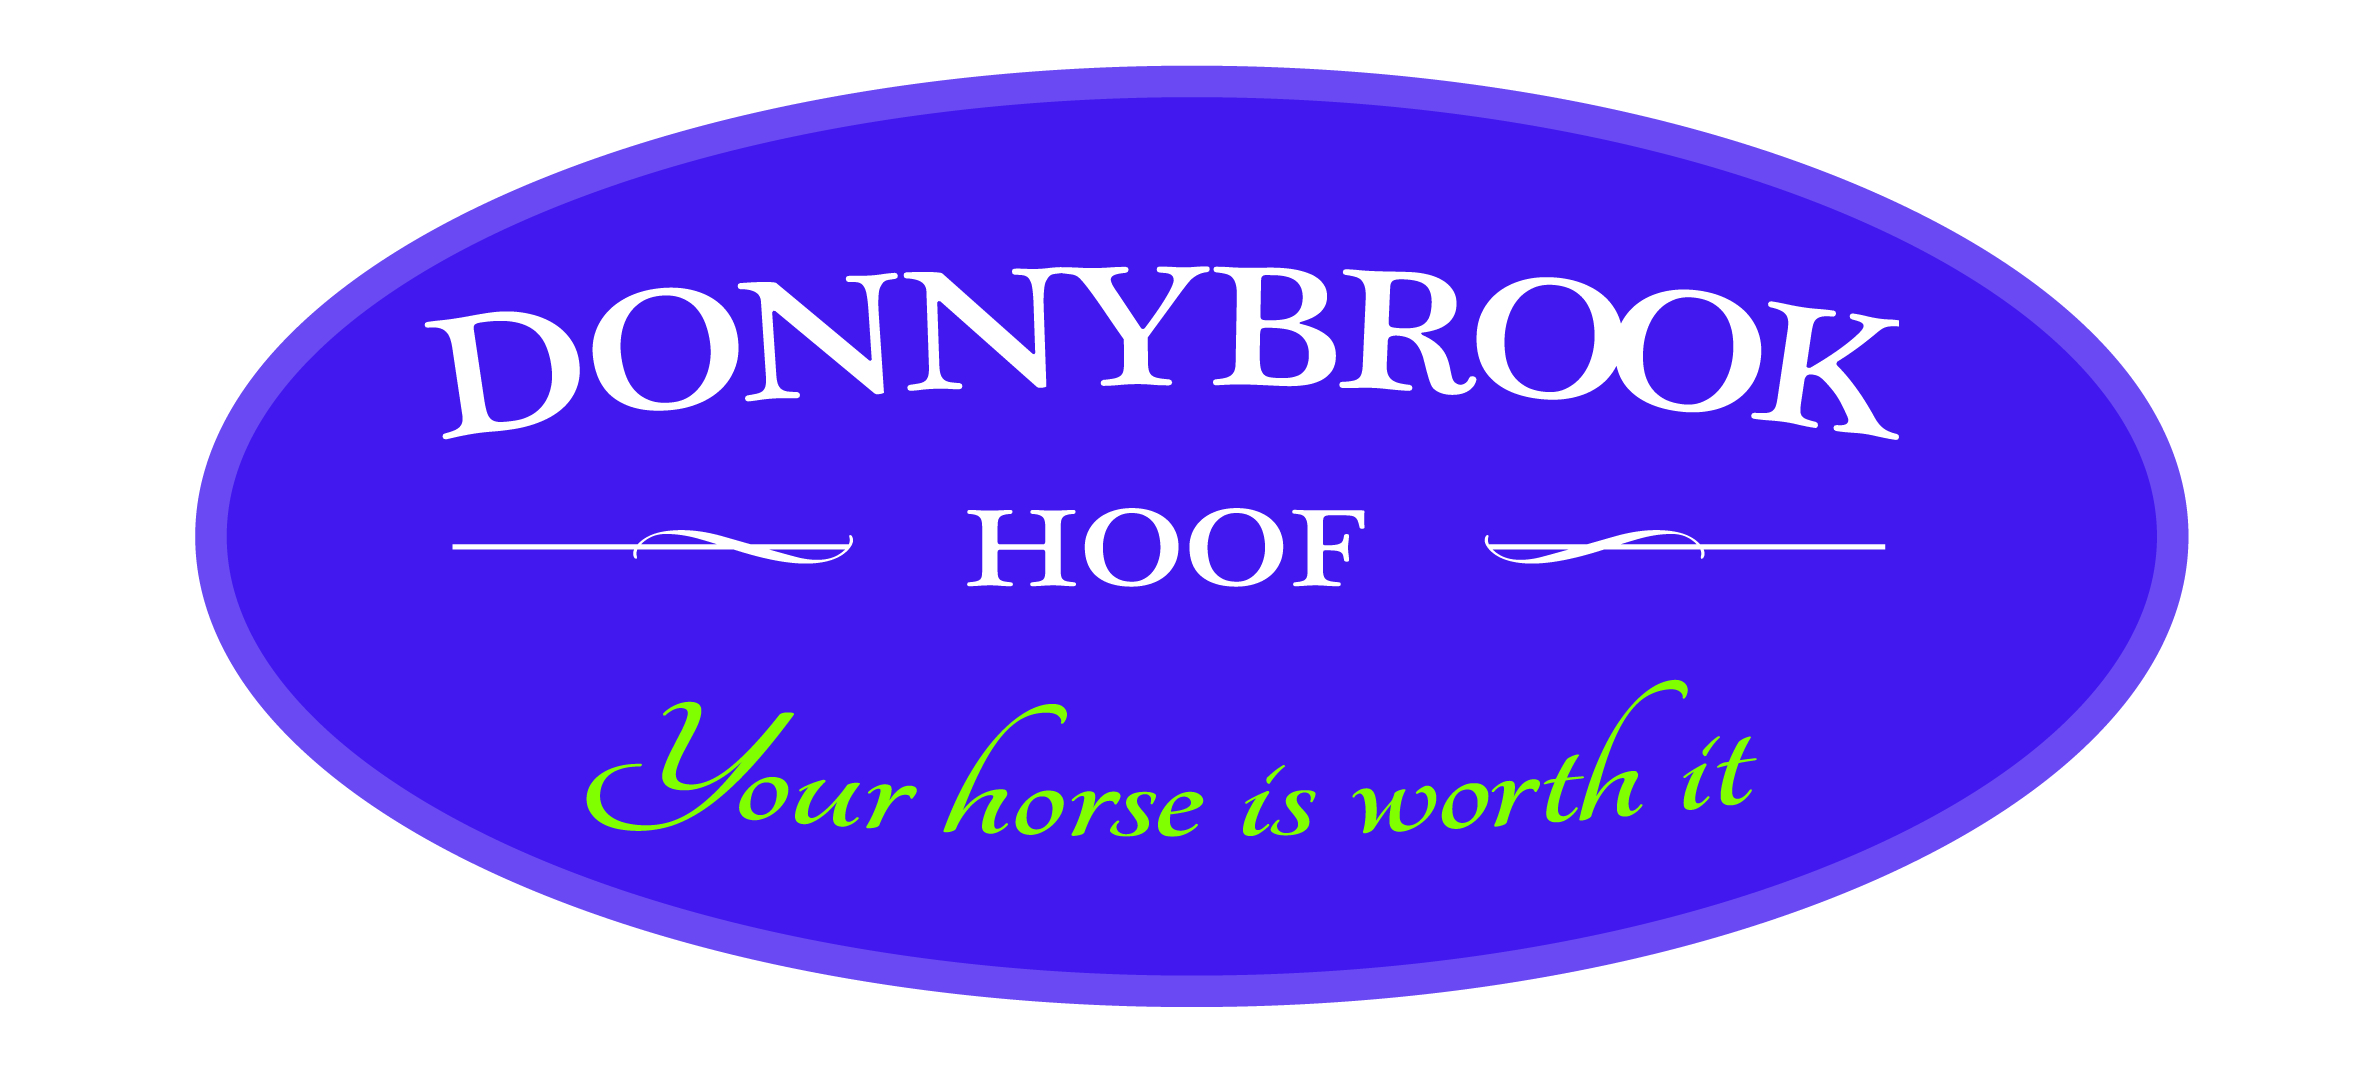 donnybrook-hoof-logo-high-res-copy.jpg